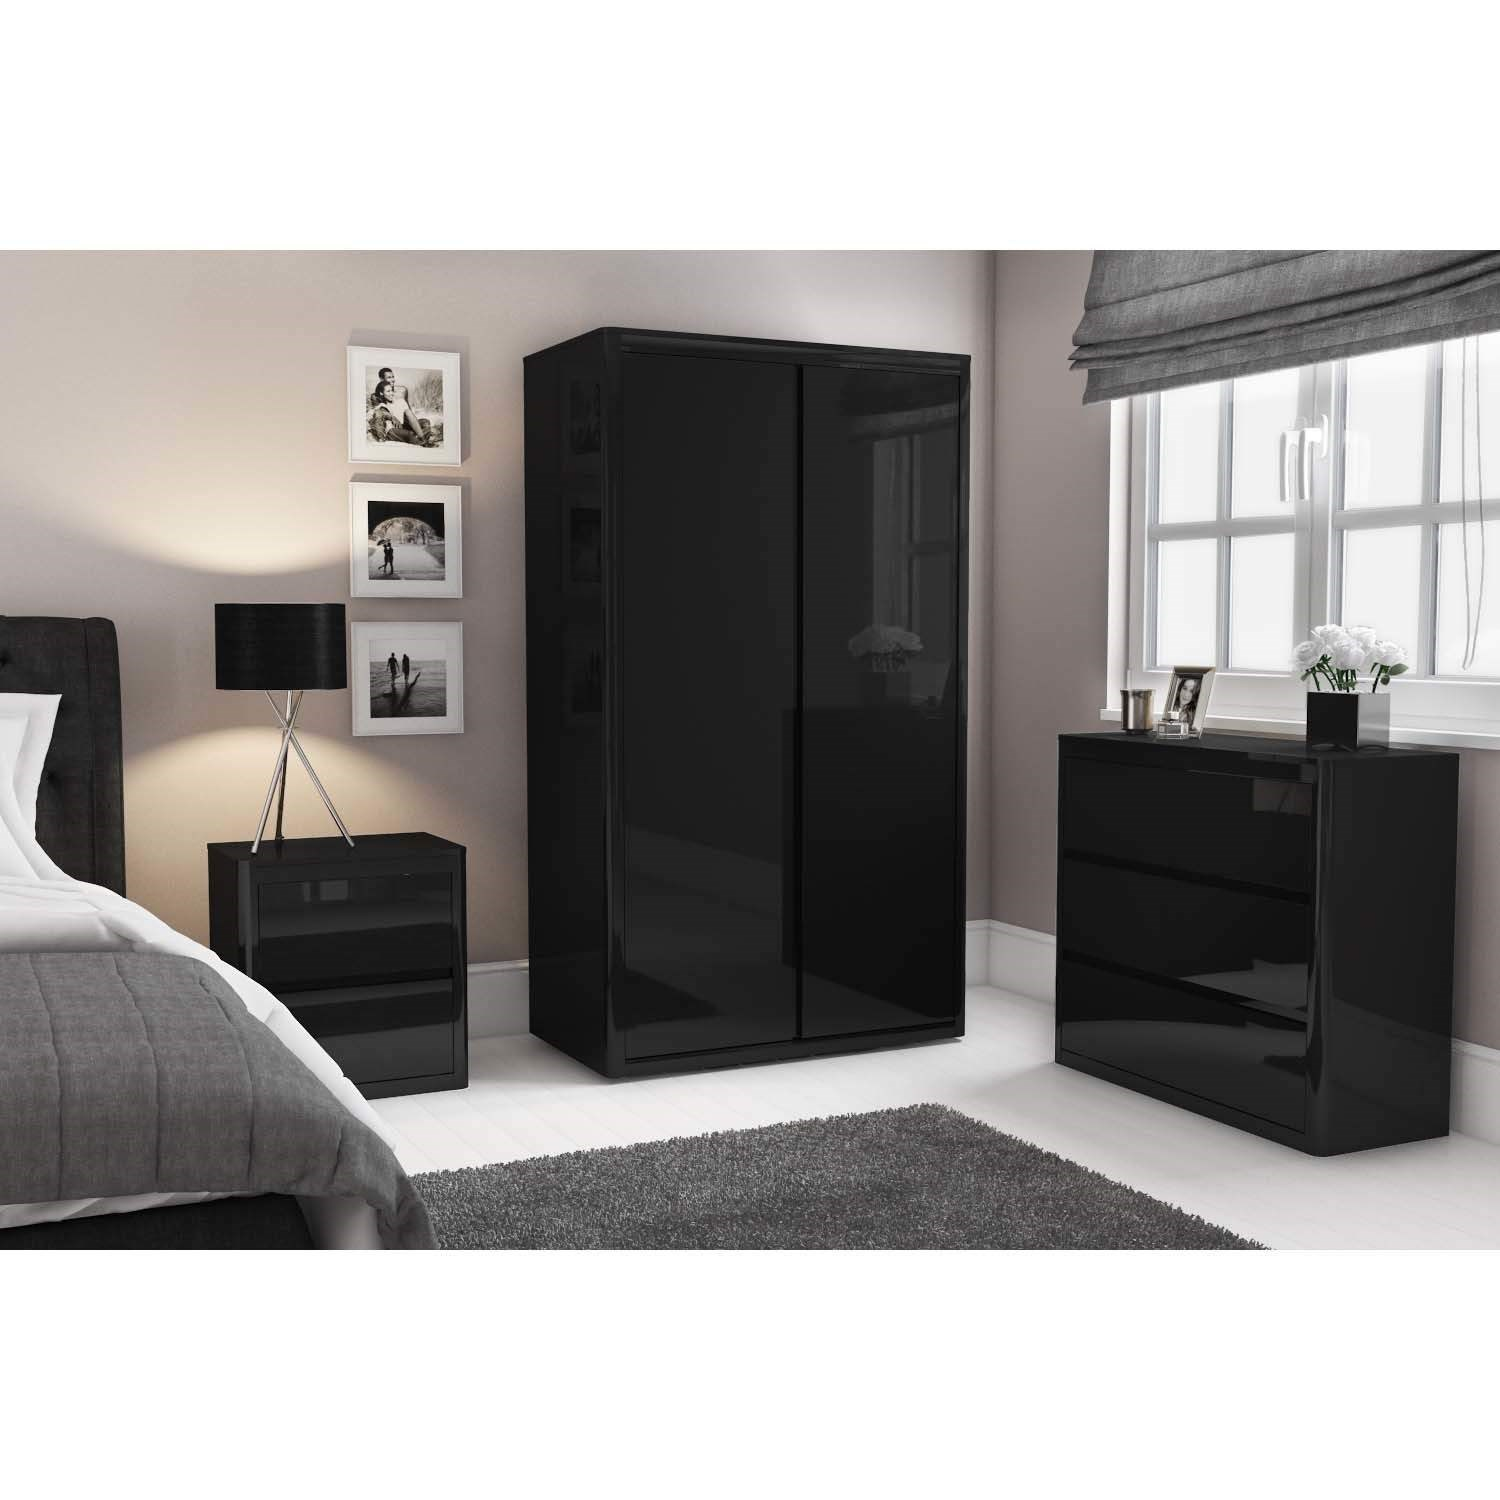 High Gloss Bedroom Cupboards Lemon Bedroom Accessories Toddler Bedroom Curtains Black And White Bedroom Cupboard Designs: Black High Gloss Bedside Table 2 Drawer Cabinet Chest